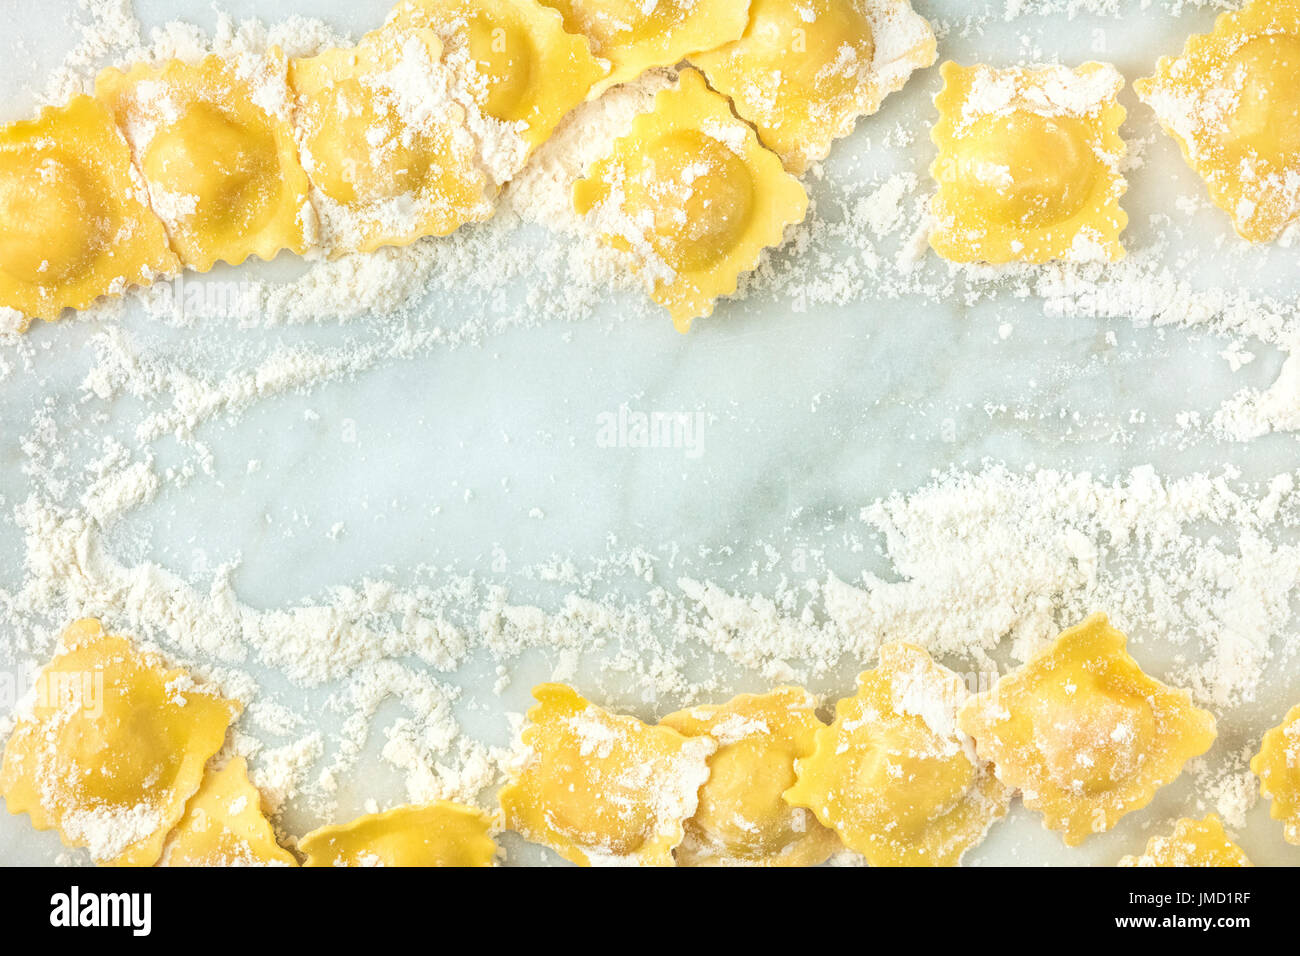 Overhead photo of ravioli with flour and copy space - Stock Image